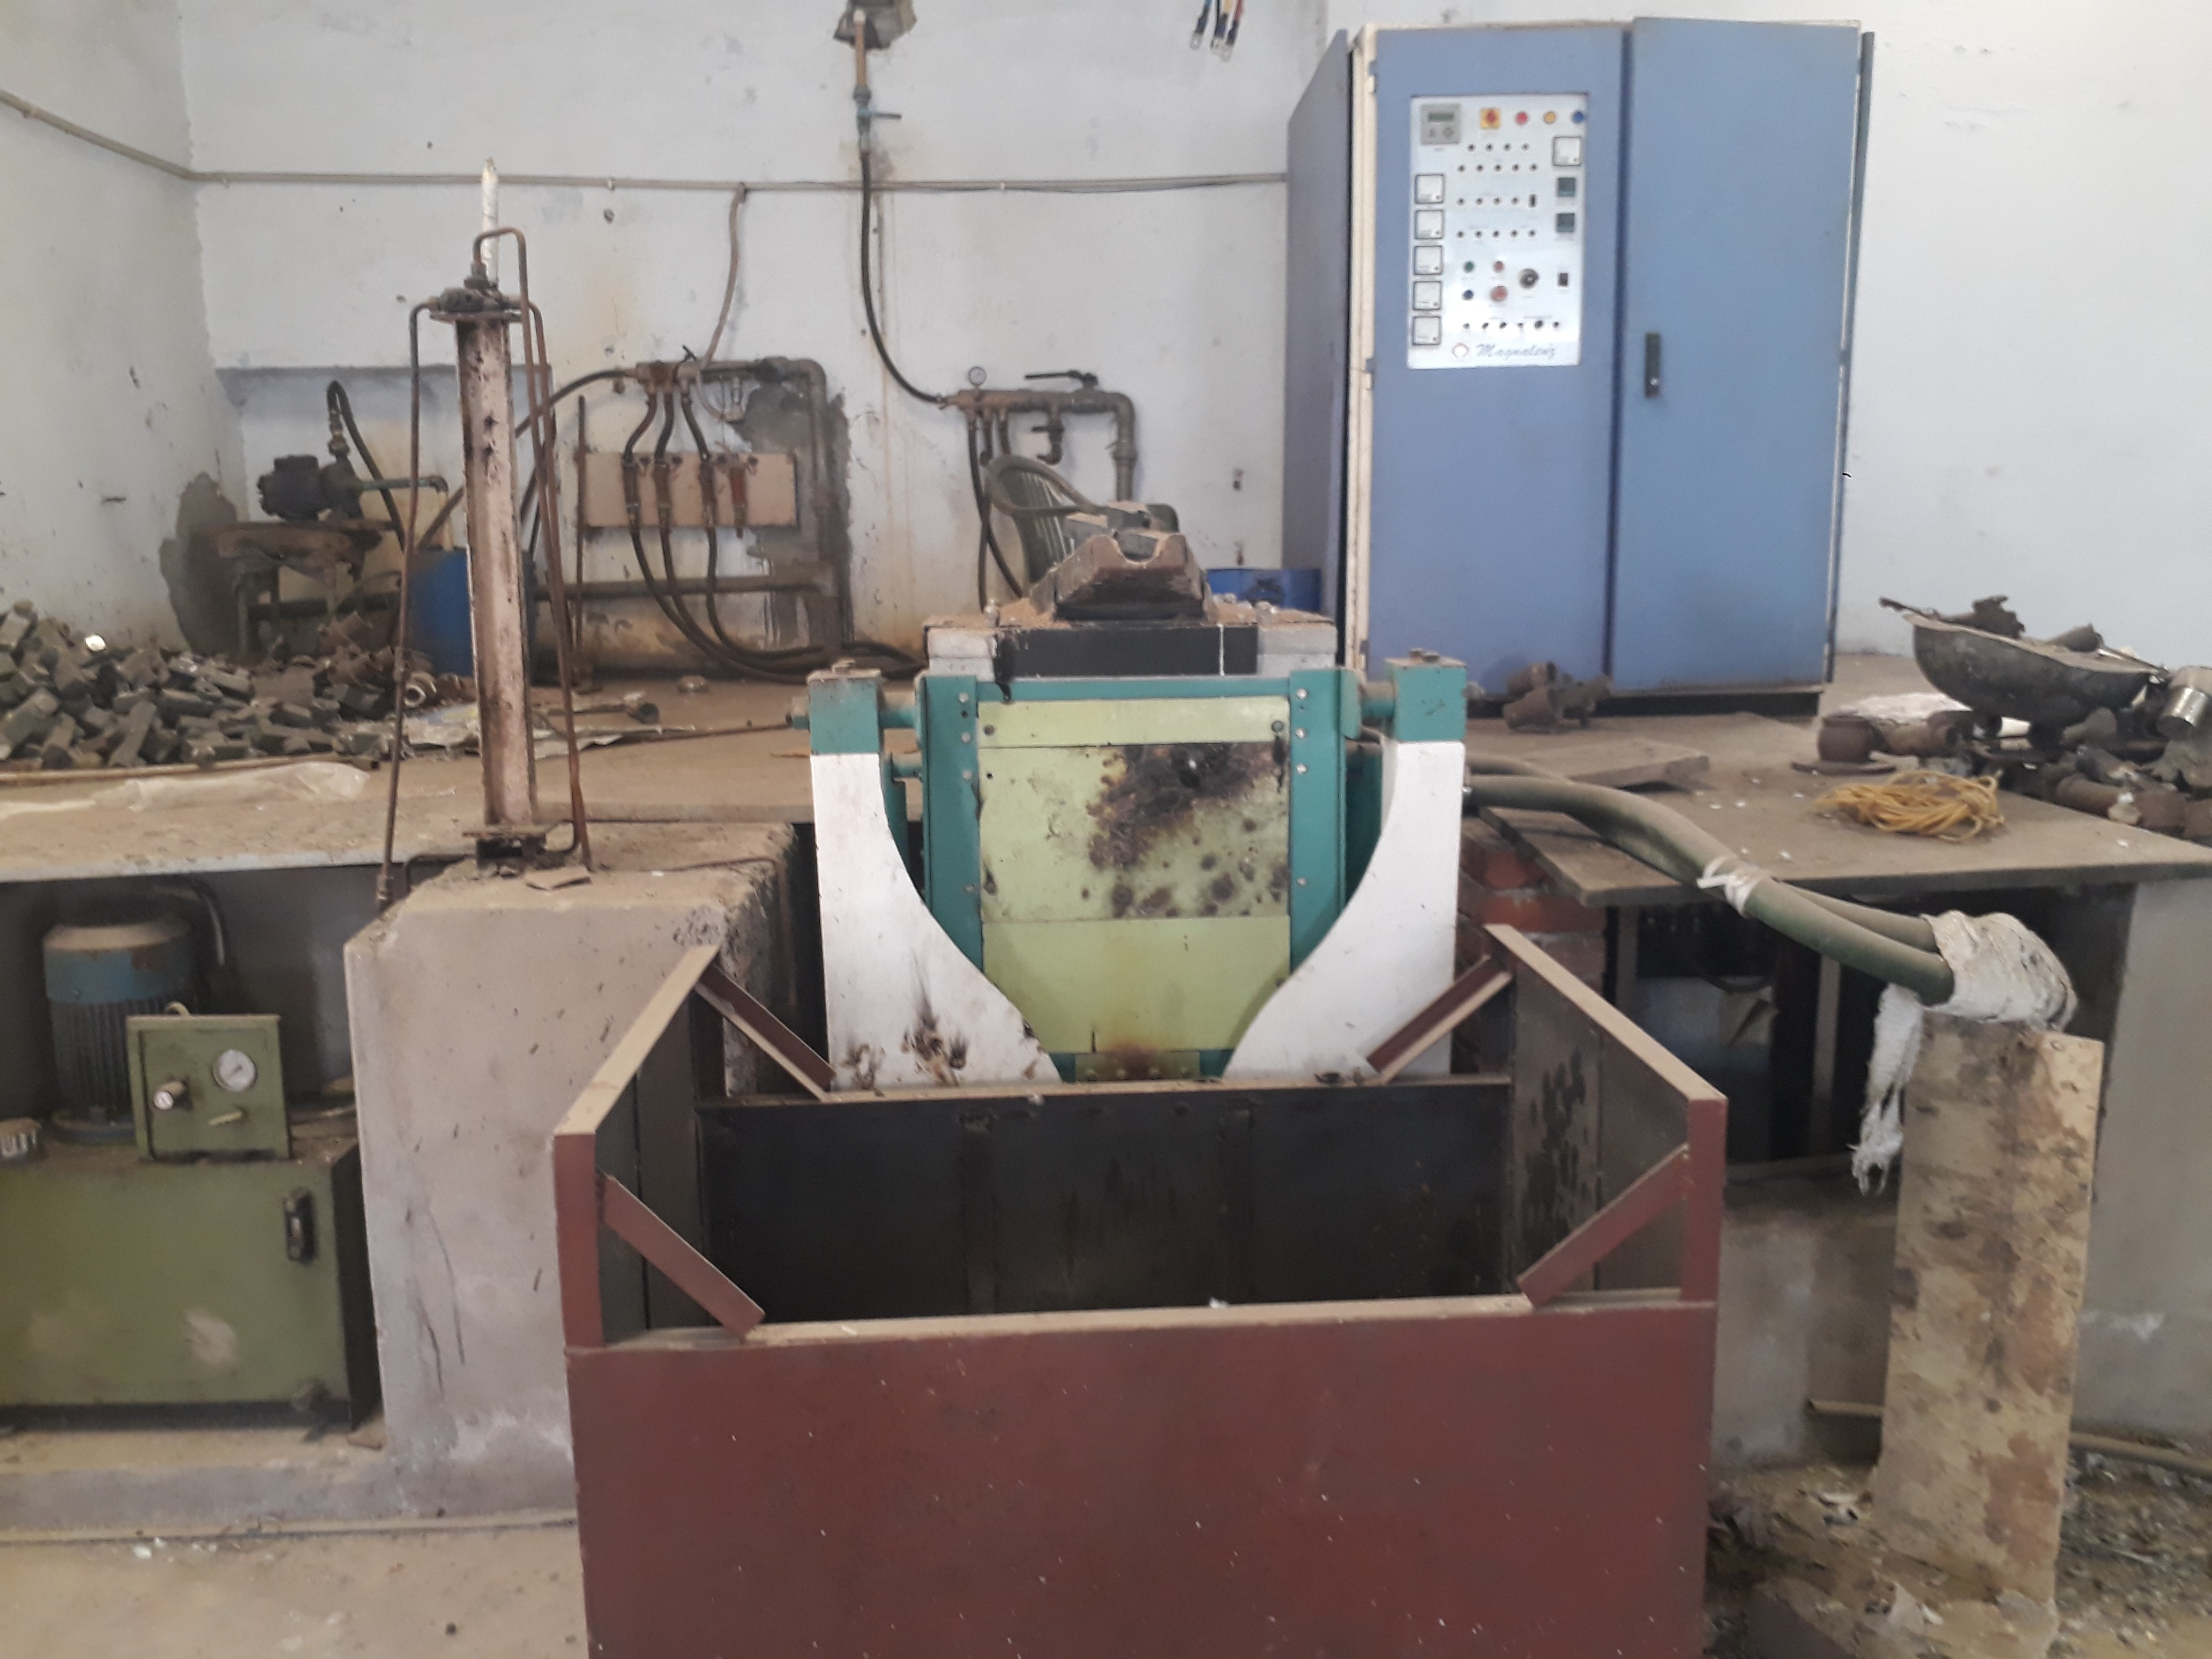 Foundry Business for Sale in Jaipur